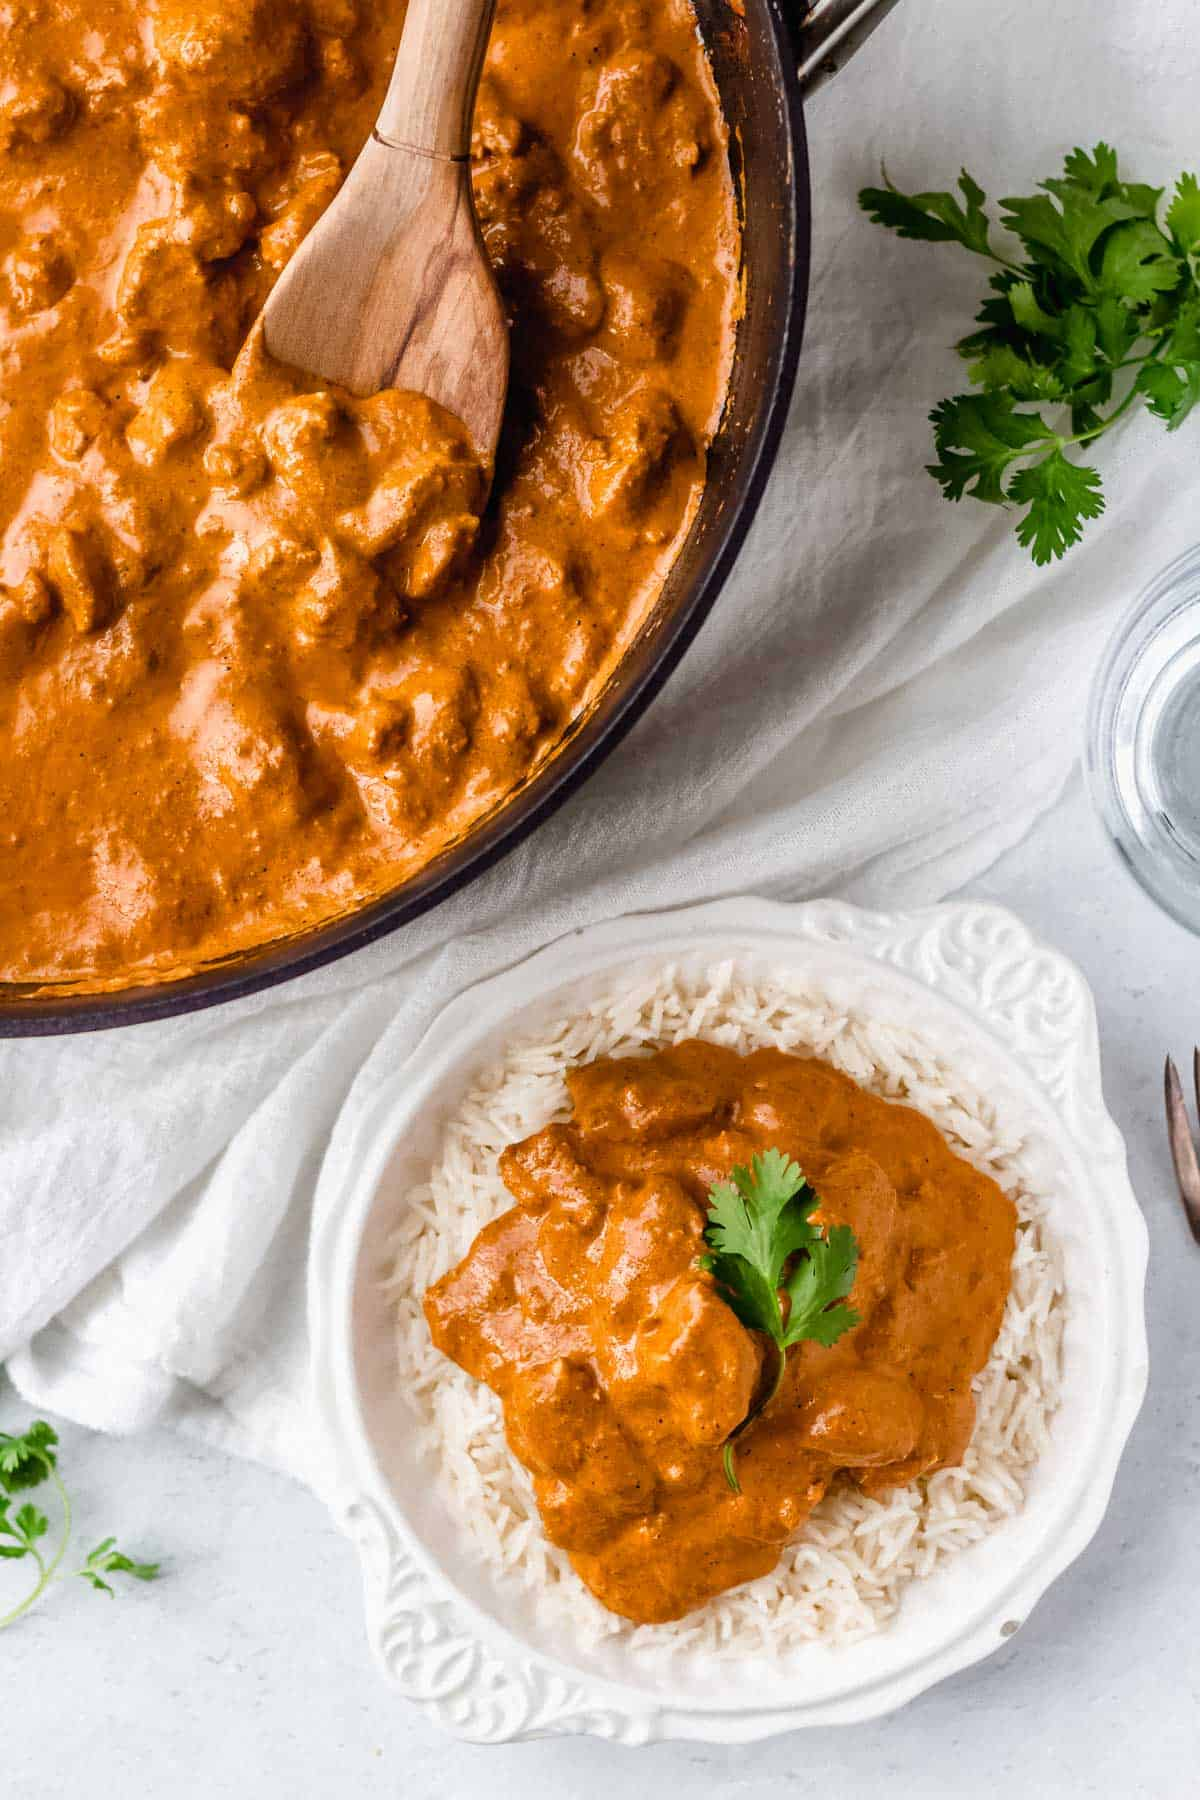 Overhead of butter chicken and rice in a white bowl with part of a pan showing with more butter chicken in it and a wood spoon with a white linen between the pan and bowl and fresh cilantro in the background